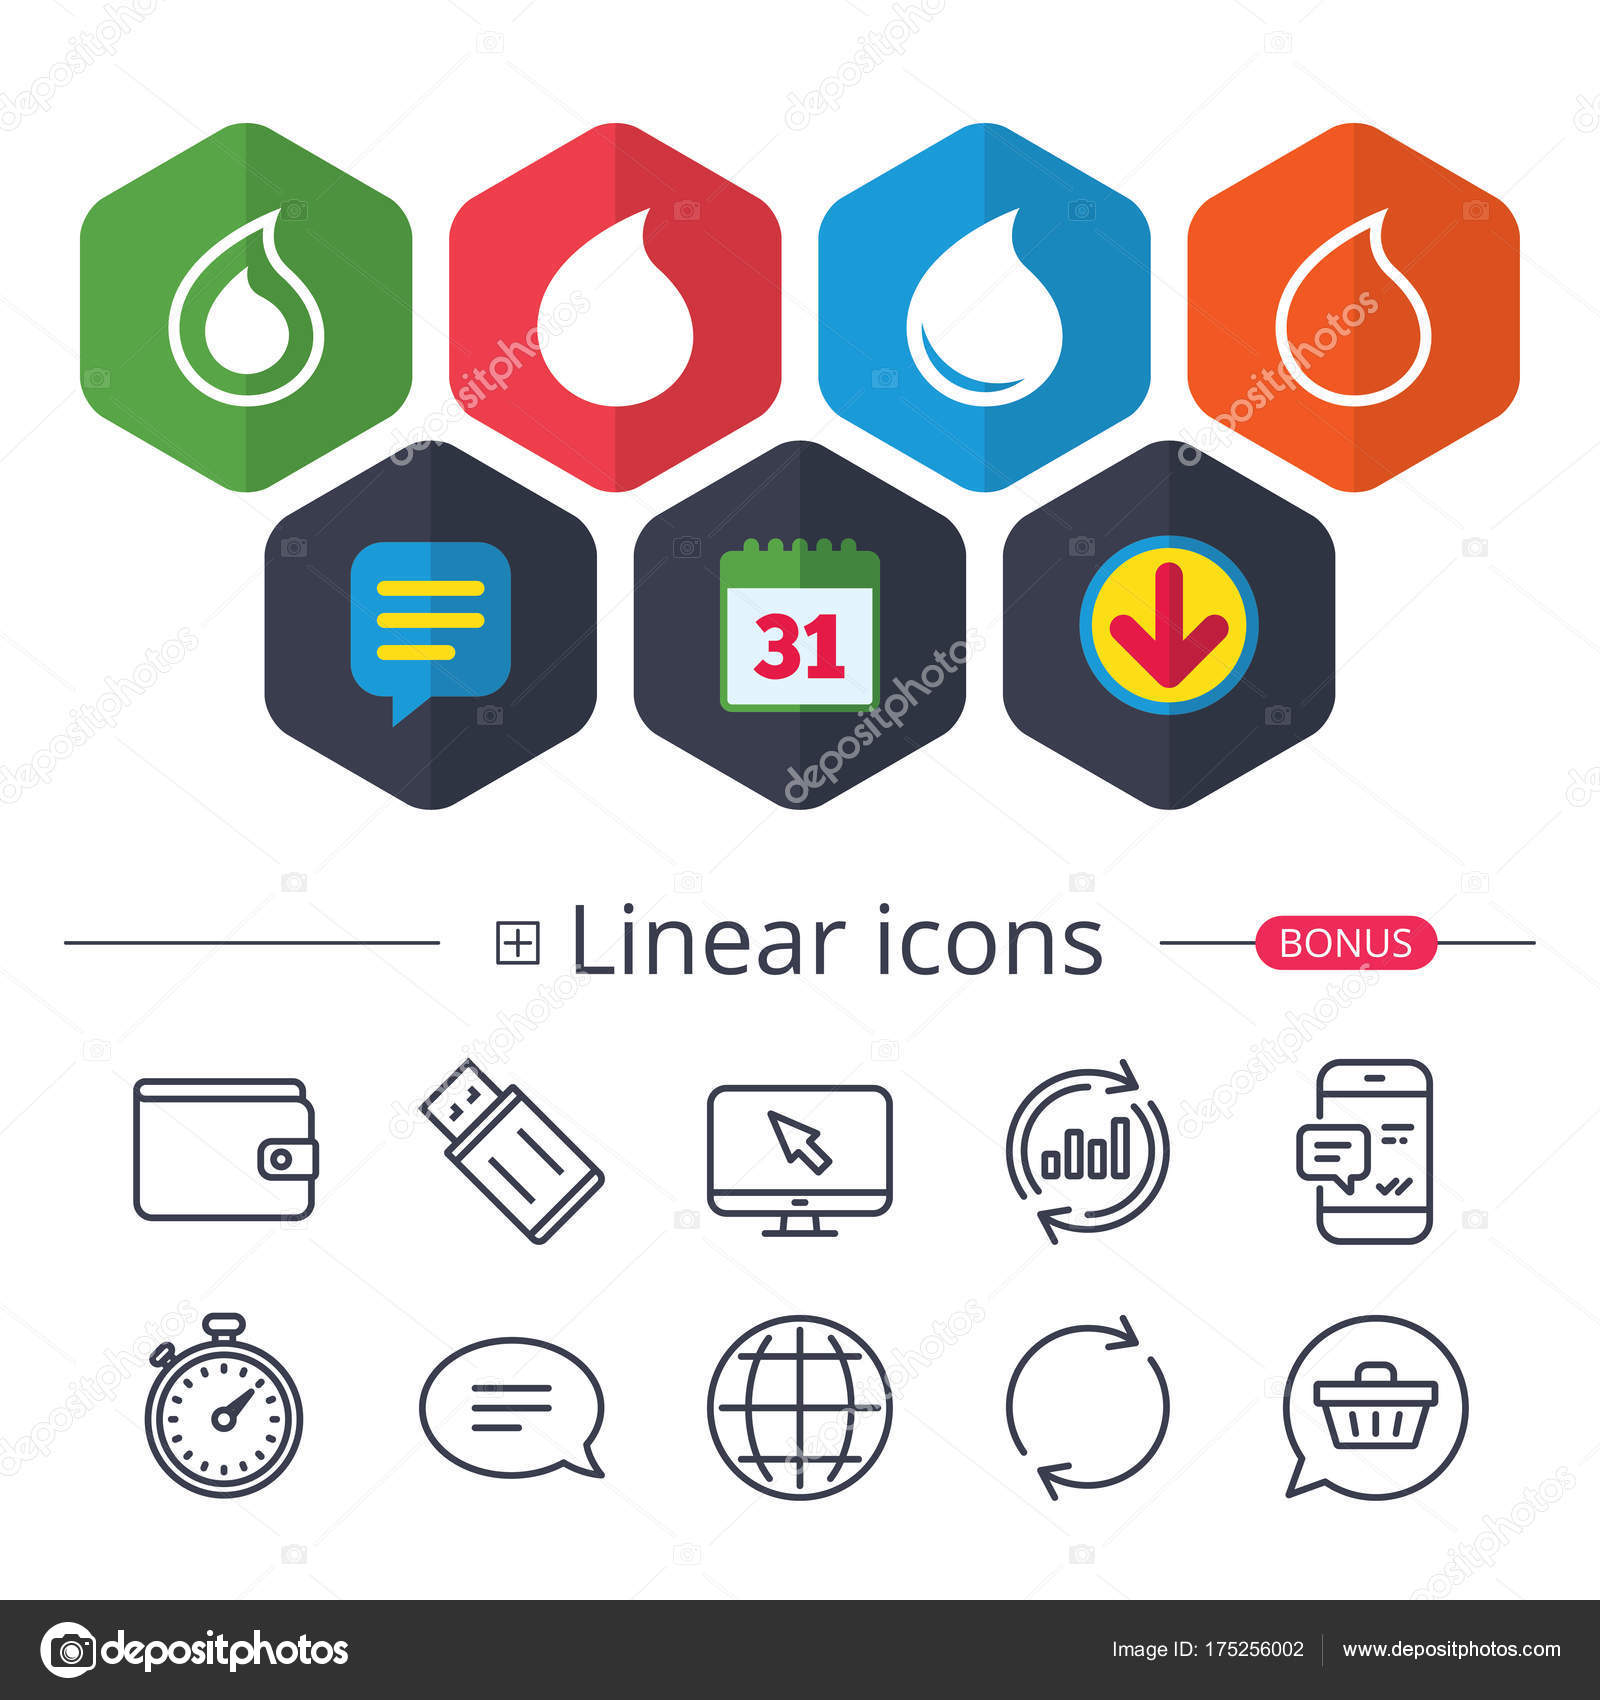 Oil symbol stock choice image symbol and sign ideas water drop icons tear or oil symbols stock vector blankstock tear or oil drop symbols chat buycottarizona